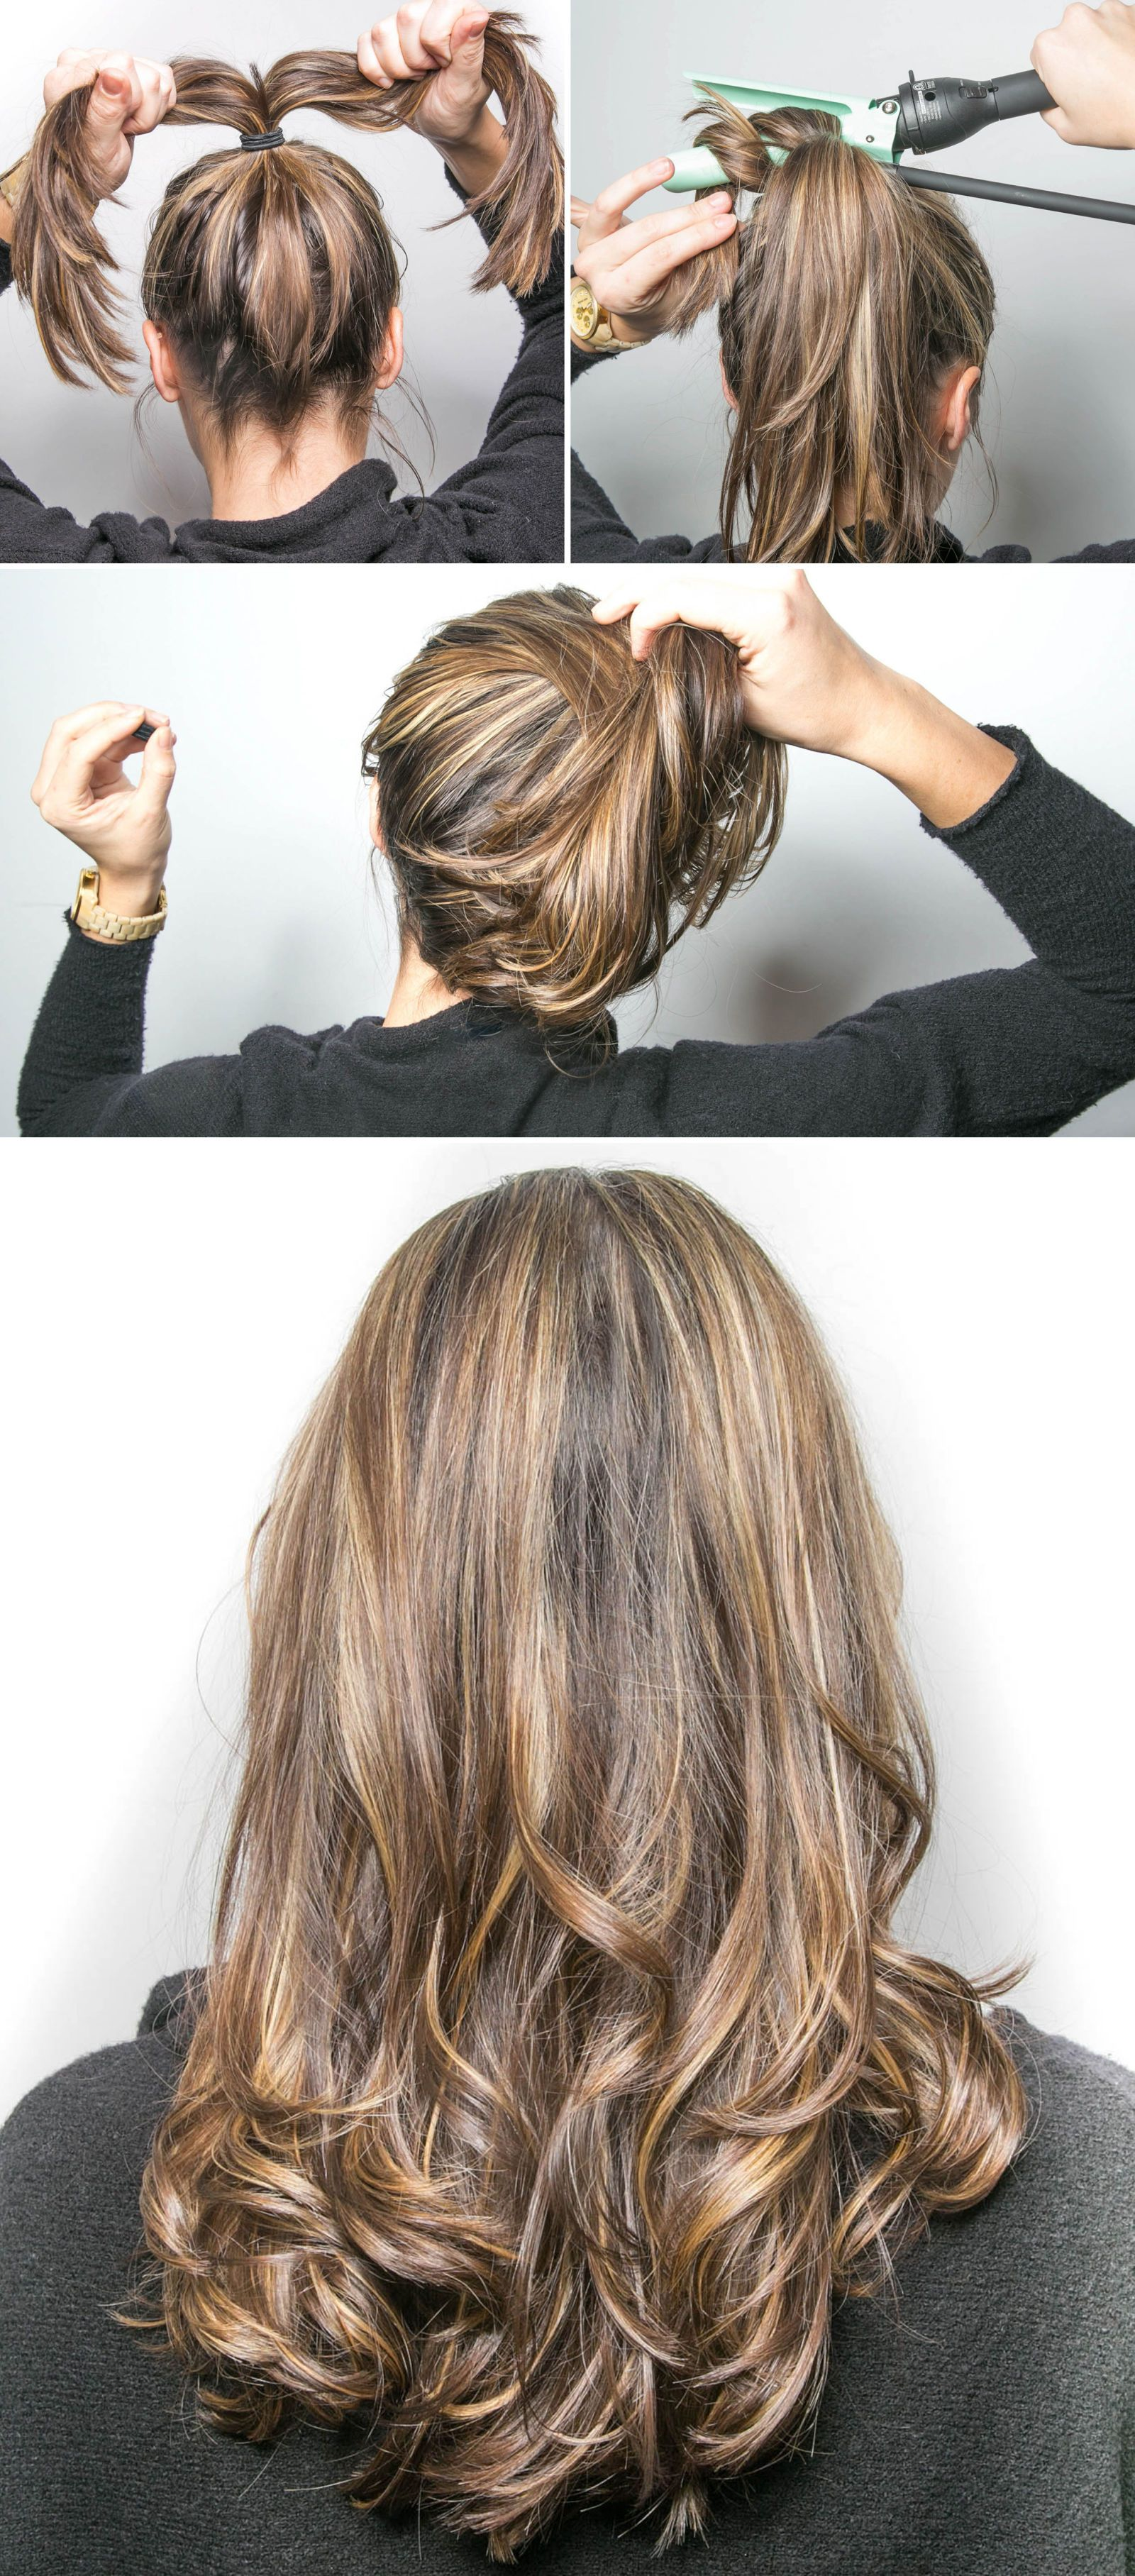 18 Holiday Beauty Hacks Every Lazy Girl Needs Hair Styles How To Curl Your Hair Hair Hacks